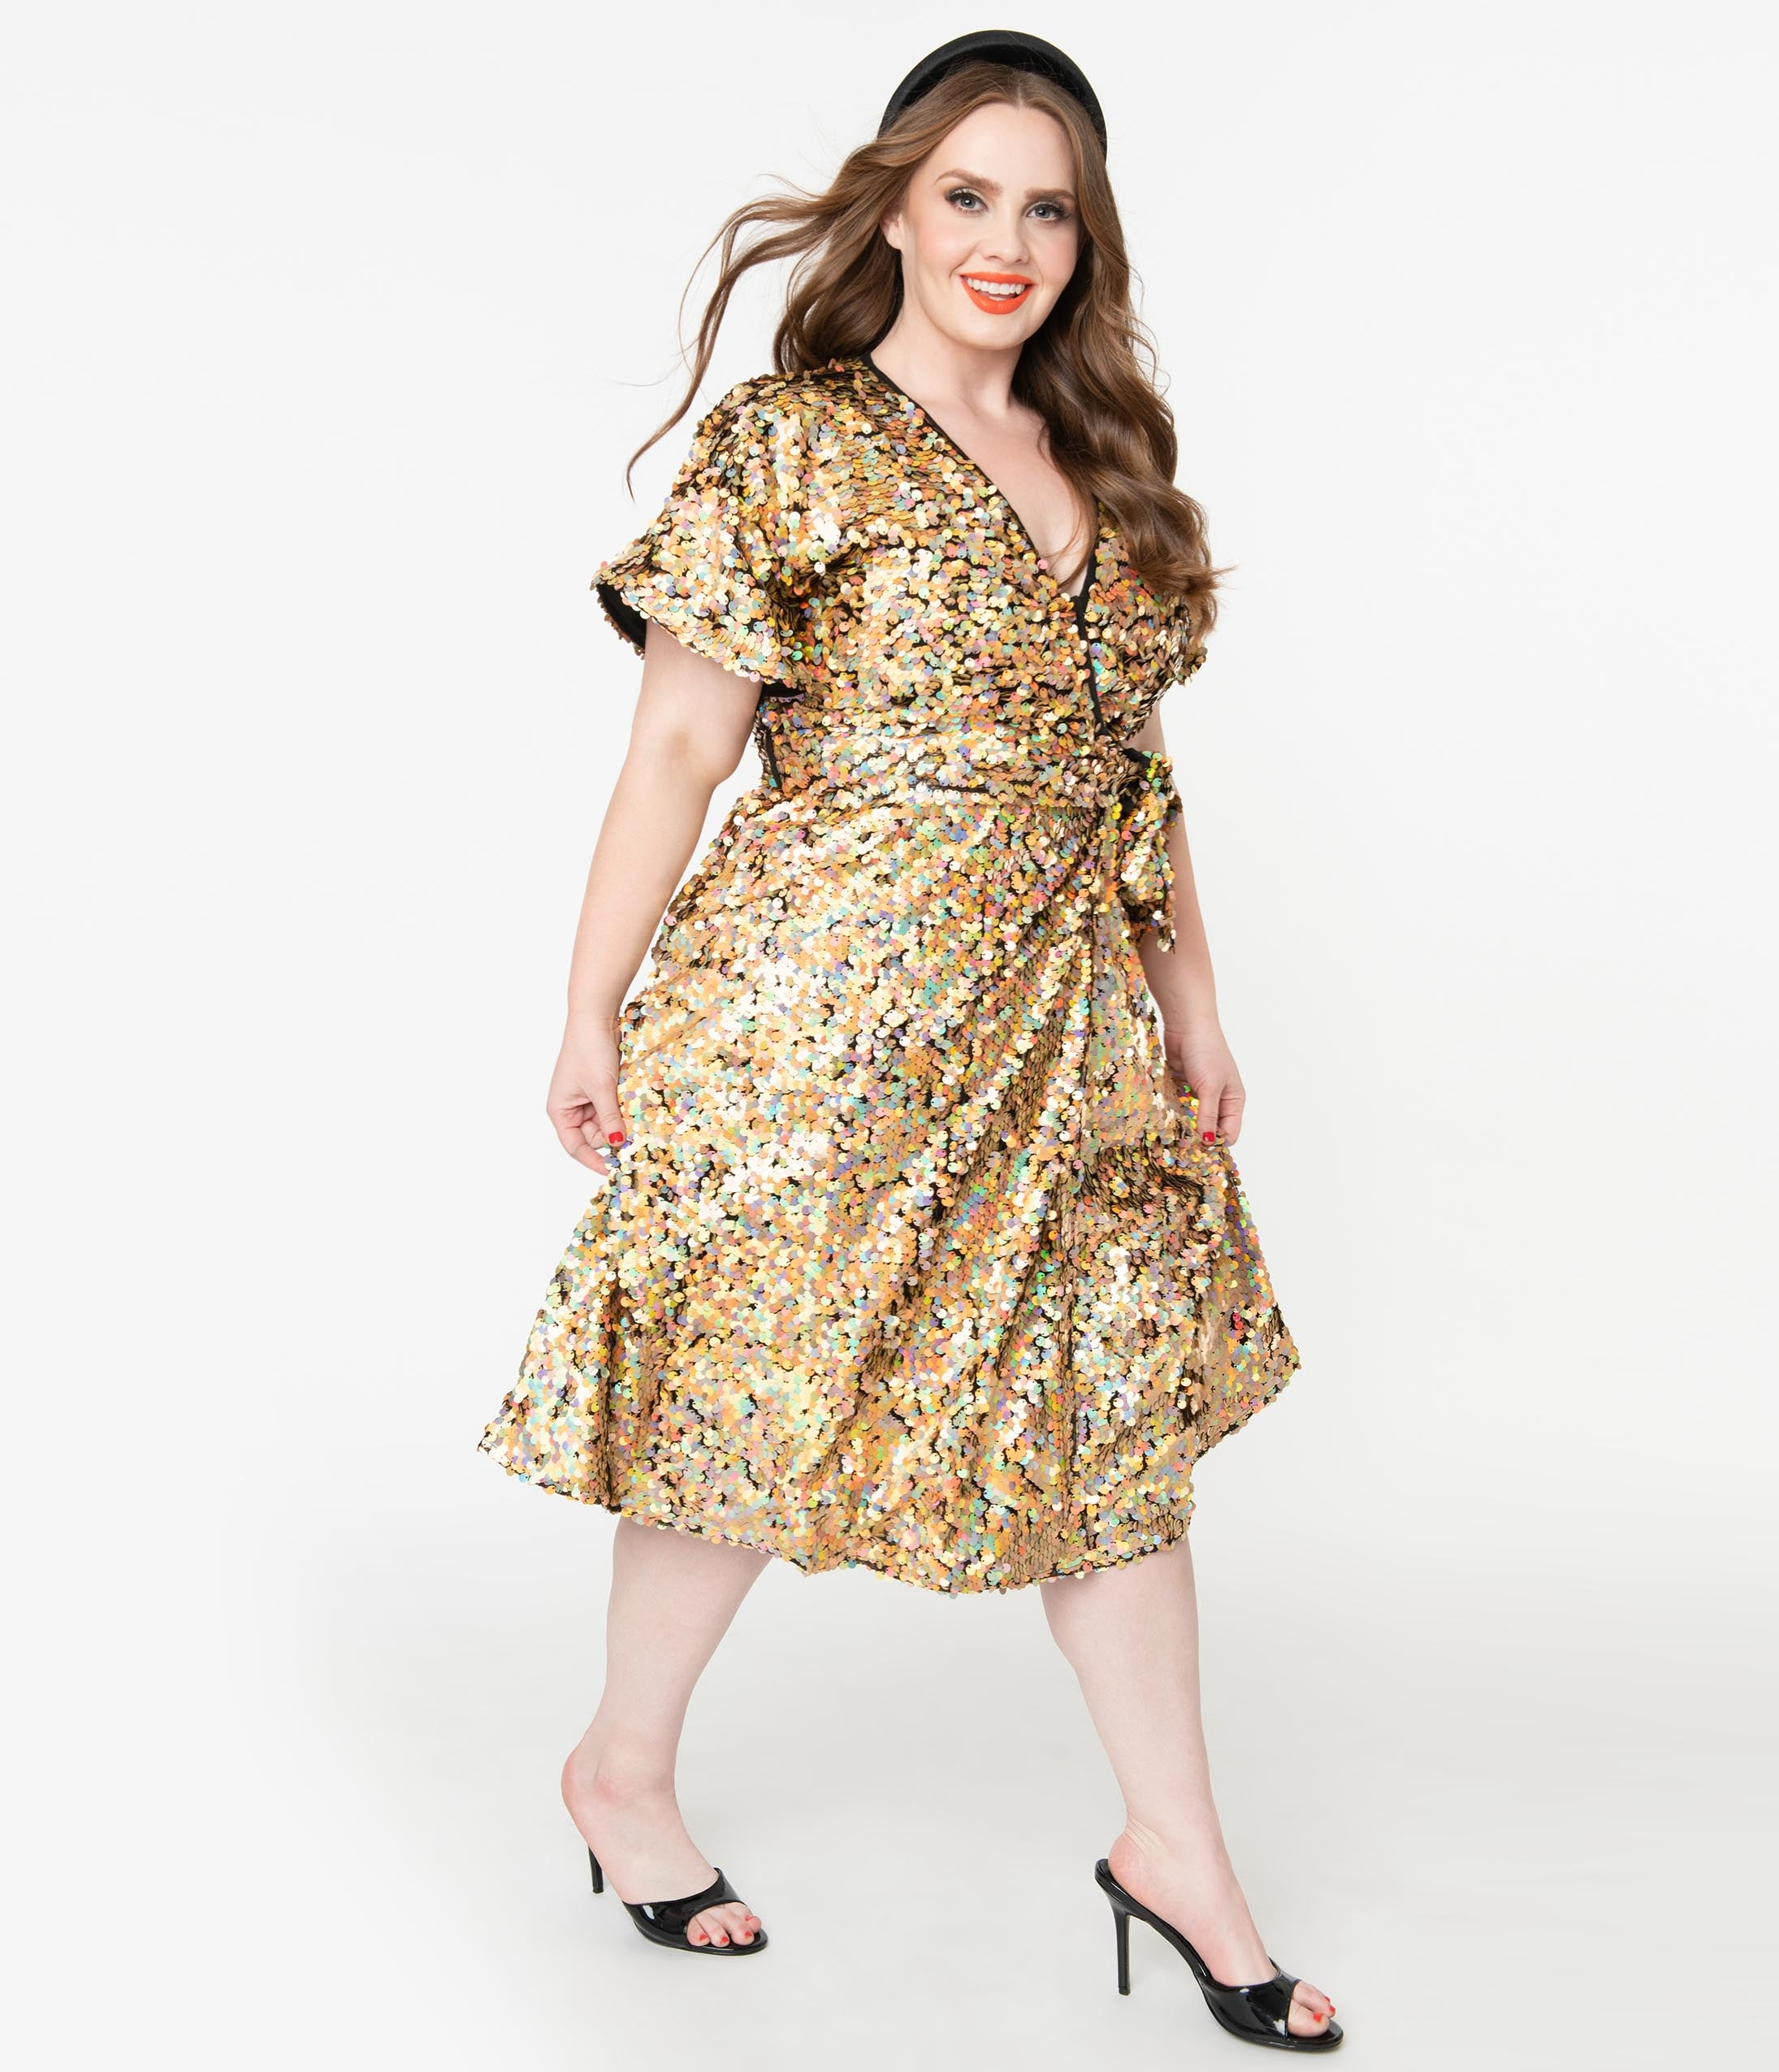 70s Prom, Formal, Evening, Party Dresses Plus Size Iridescent Gold Sequin Wrap Dress $168.00 AT vintagedancer.com